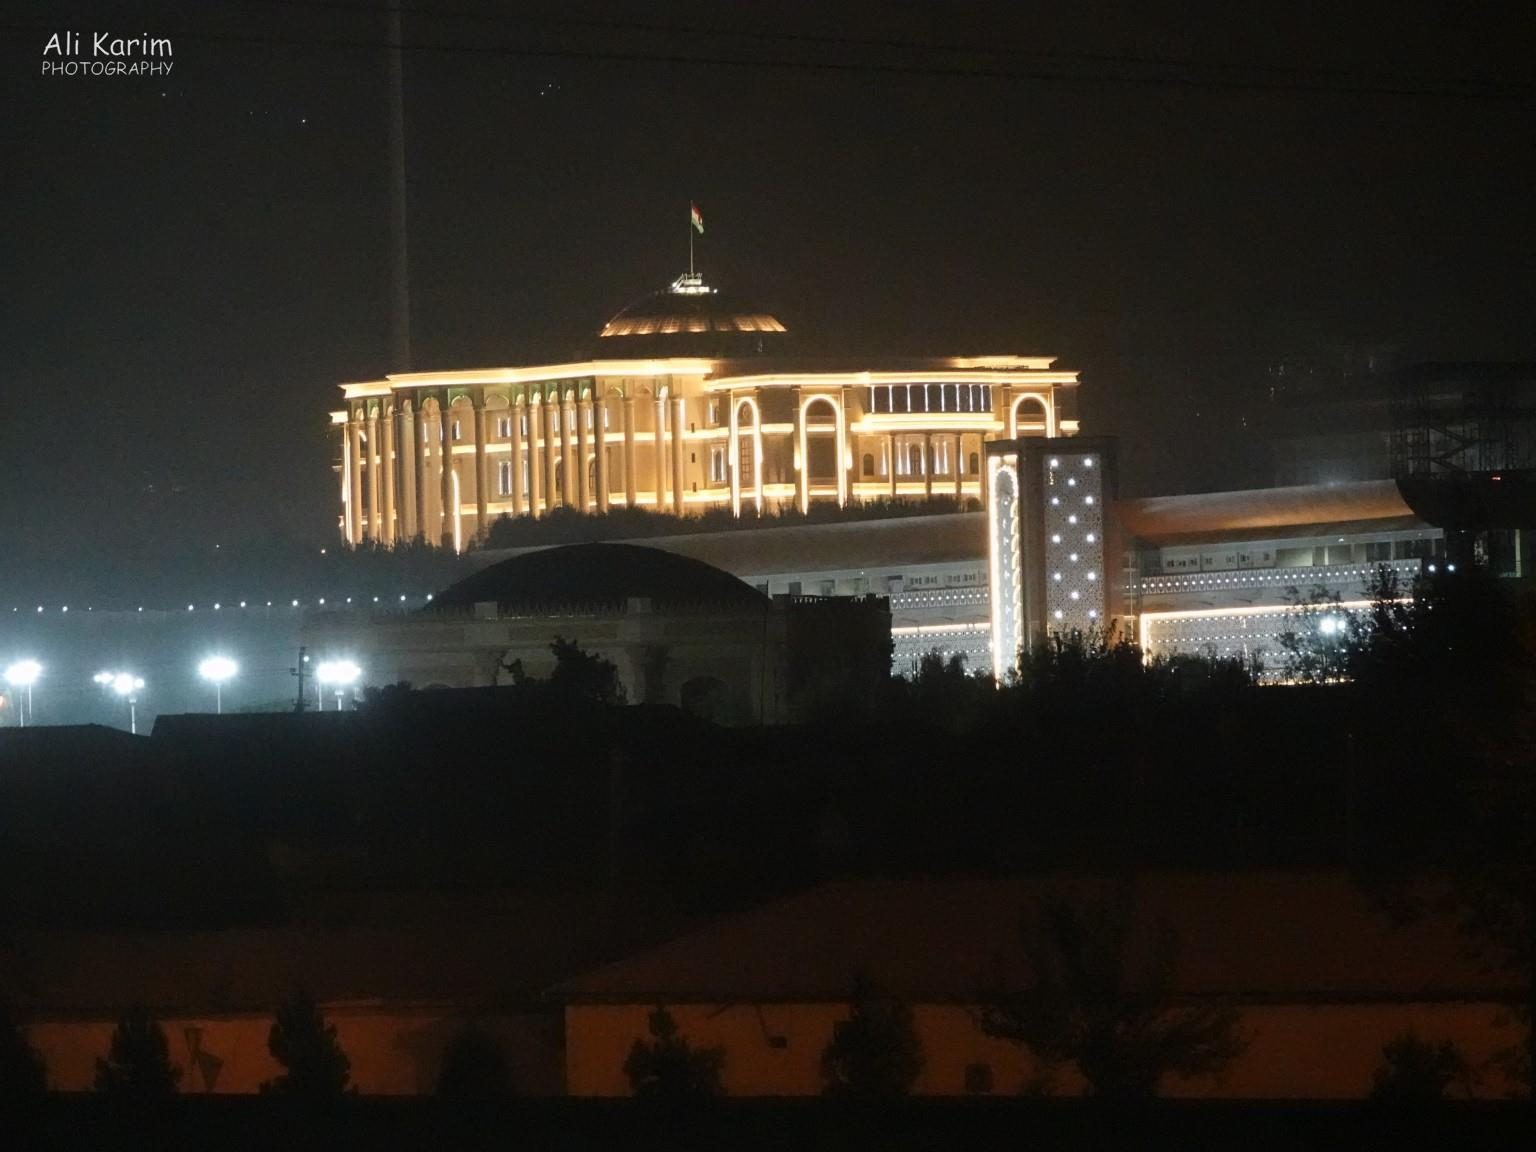 Dushanbe, Tajikistan The Presidential palace at night, that we were not supposed to photograph. Many buildings in the city were similarly nicely lit up at night